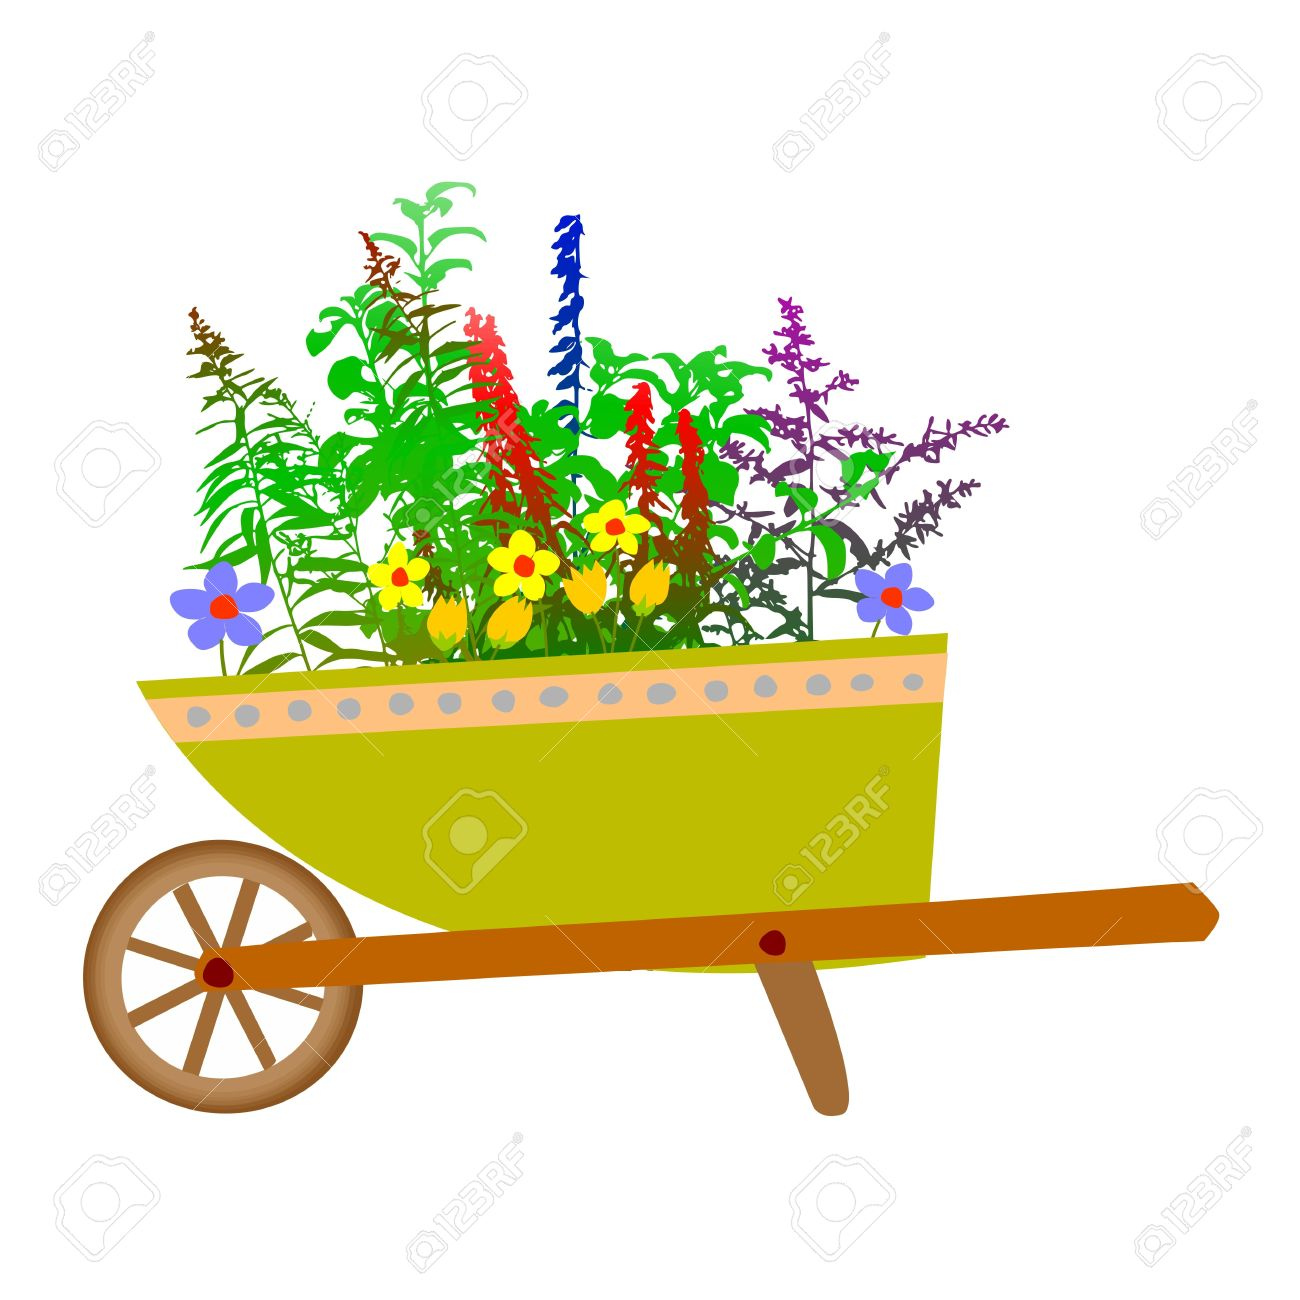 Wheelbarrow Garden And Flowers.